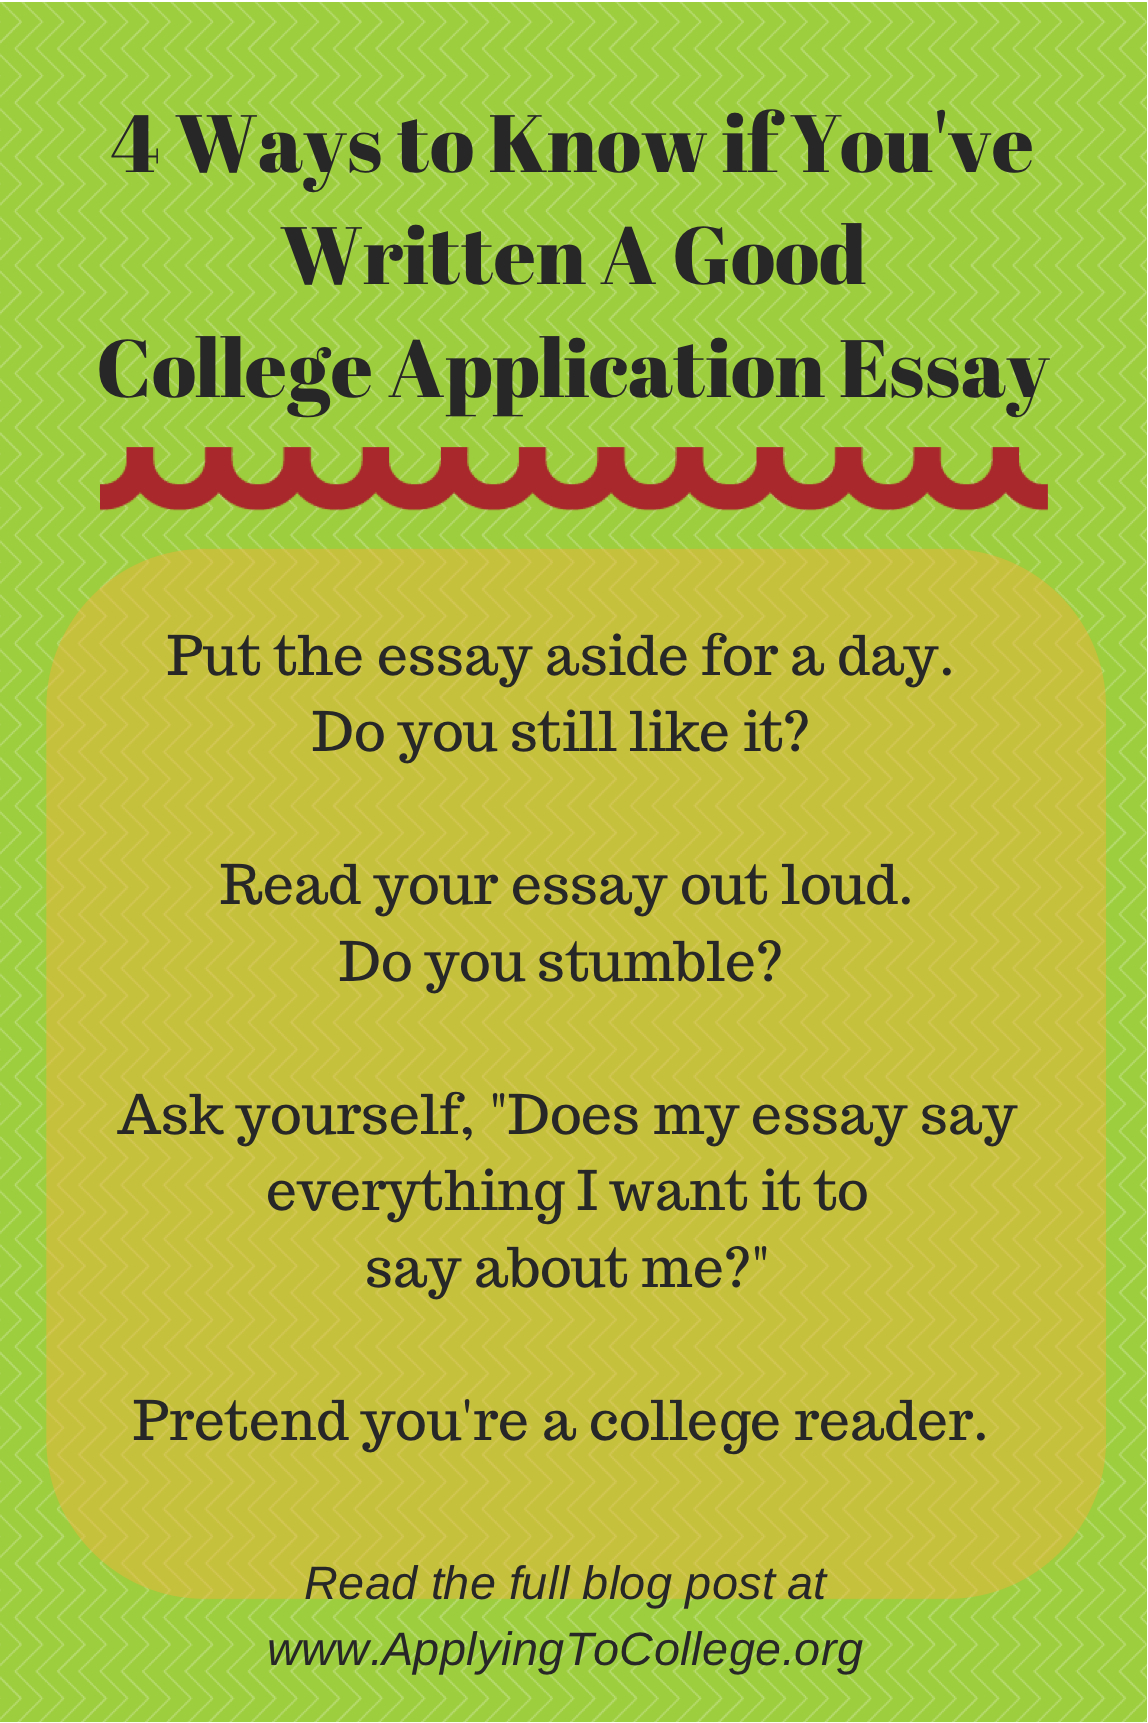 Stuck? 5 Tips to Jump-Start Your College Essay | Applying To College